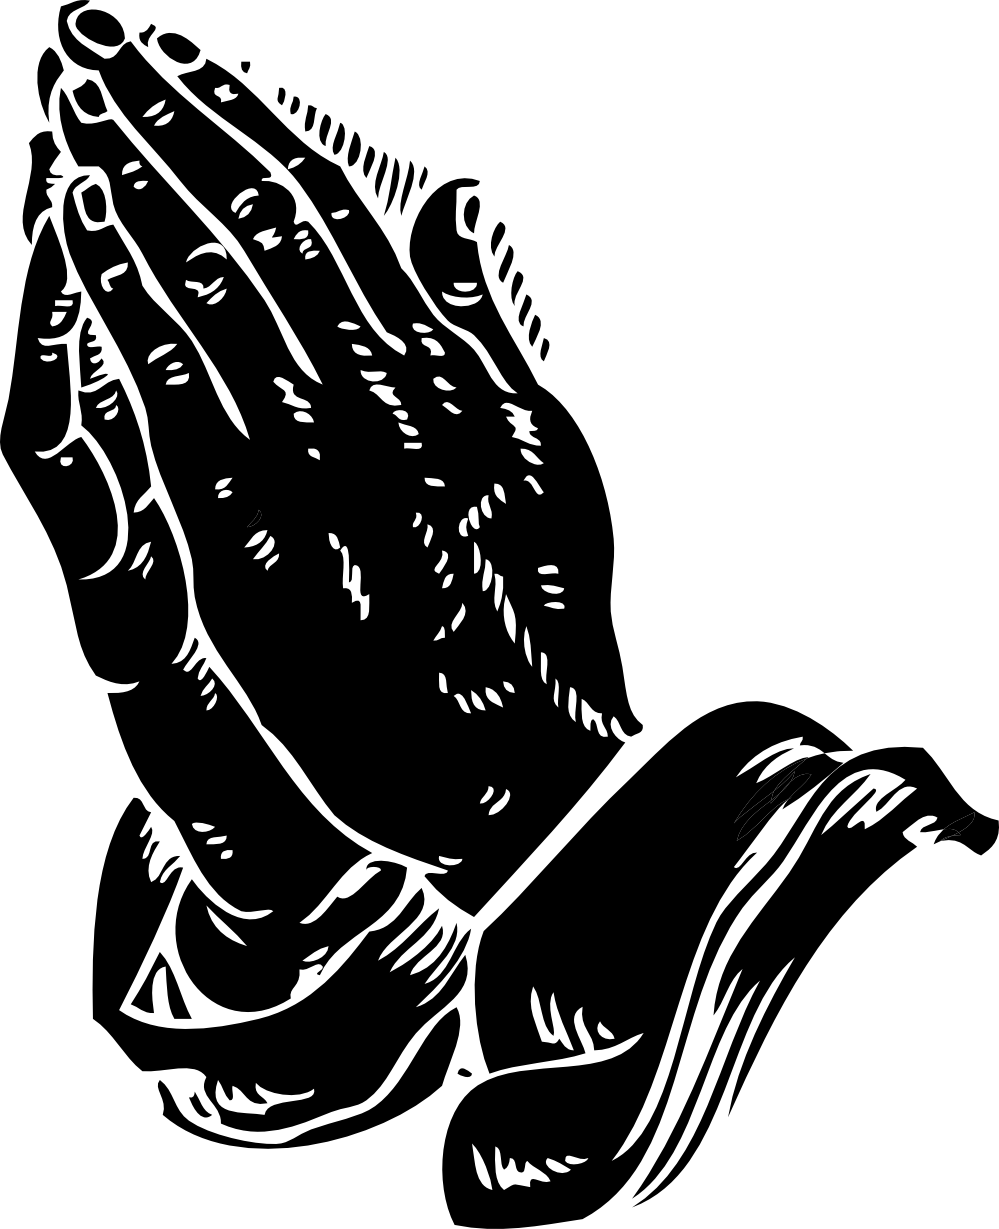 Cross and praying hands clipart vector library library Best Photos of Praying Hands Line Art - Praying Hands Clip Art Free ... vector library library